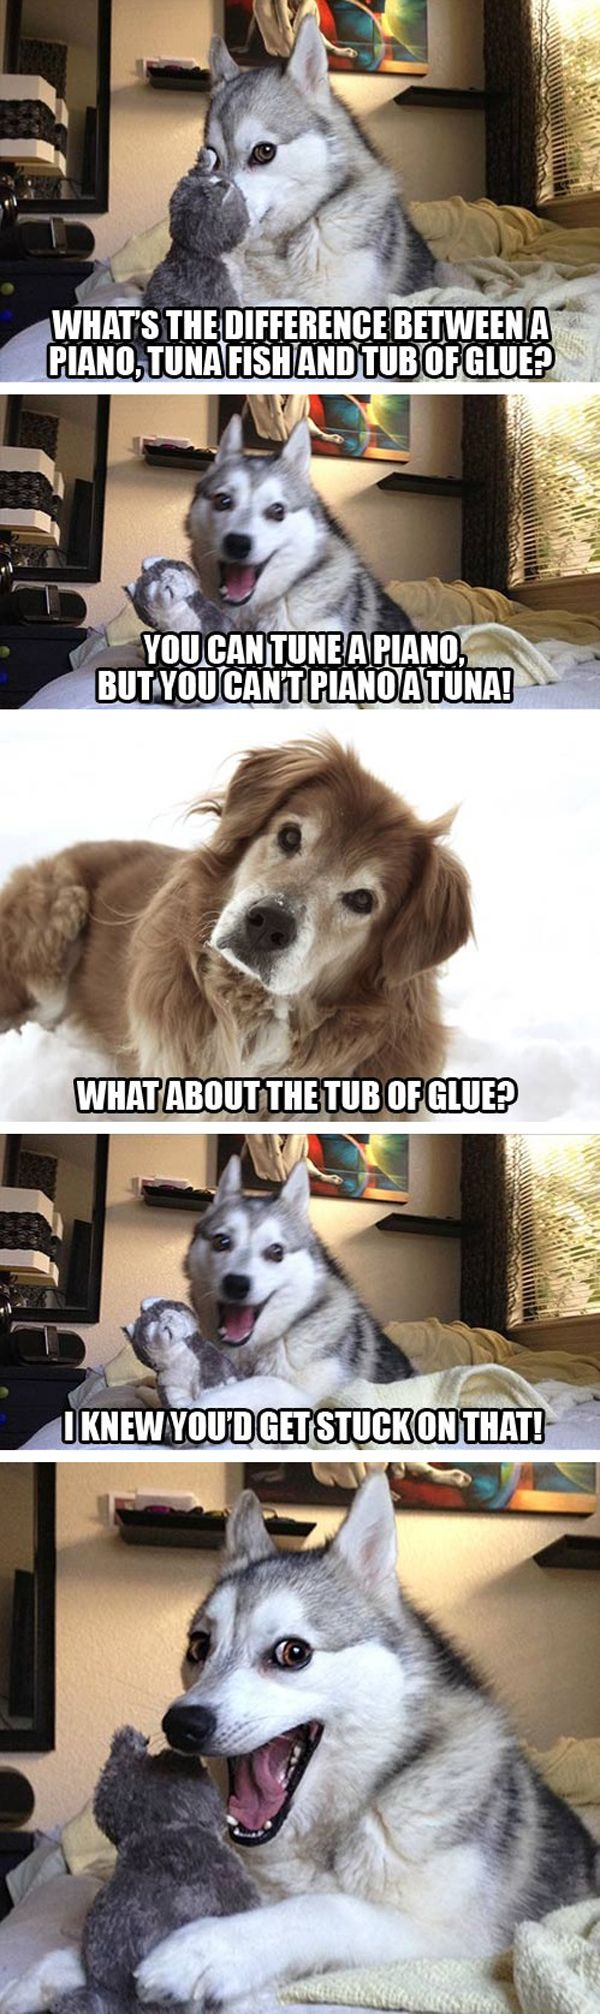 Sorry Doge, We Are All About Bad Pun Dog Now | Dogster